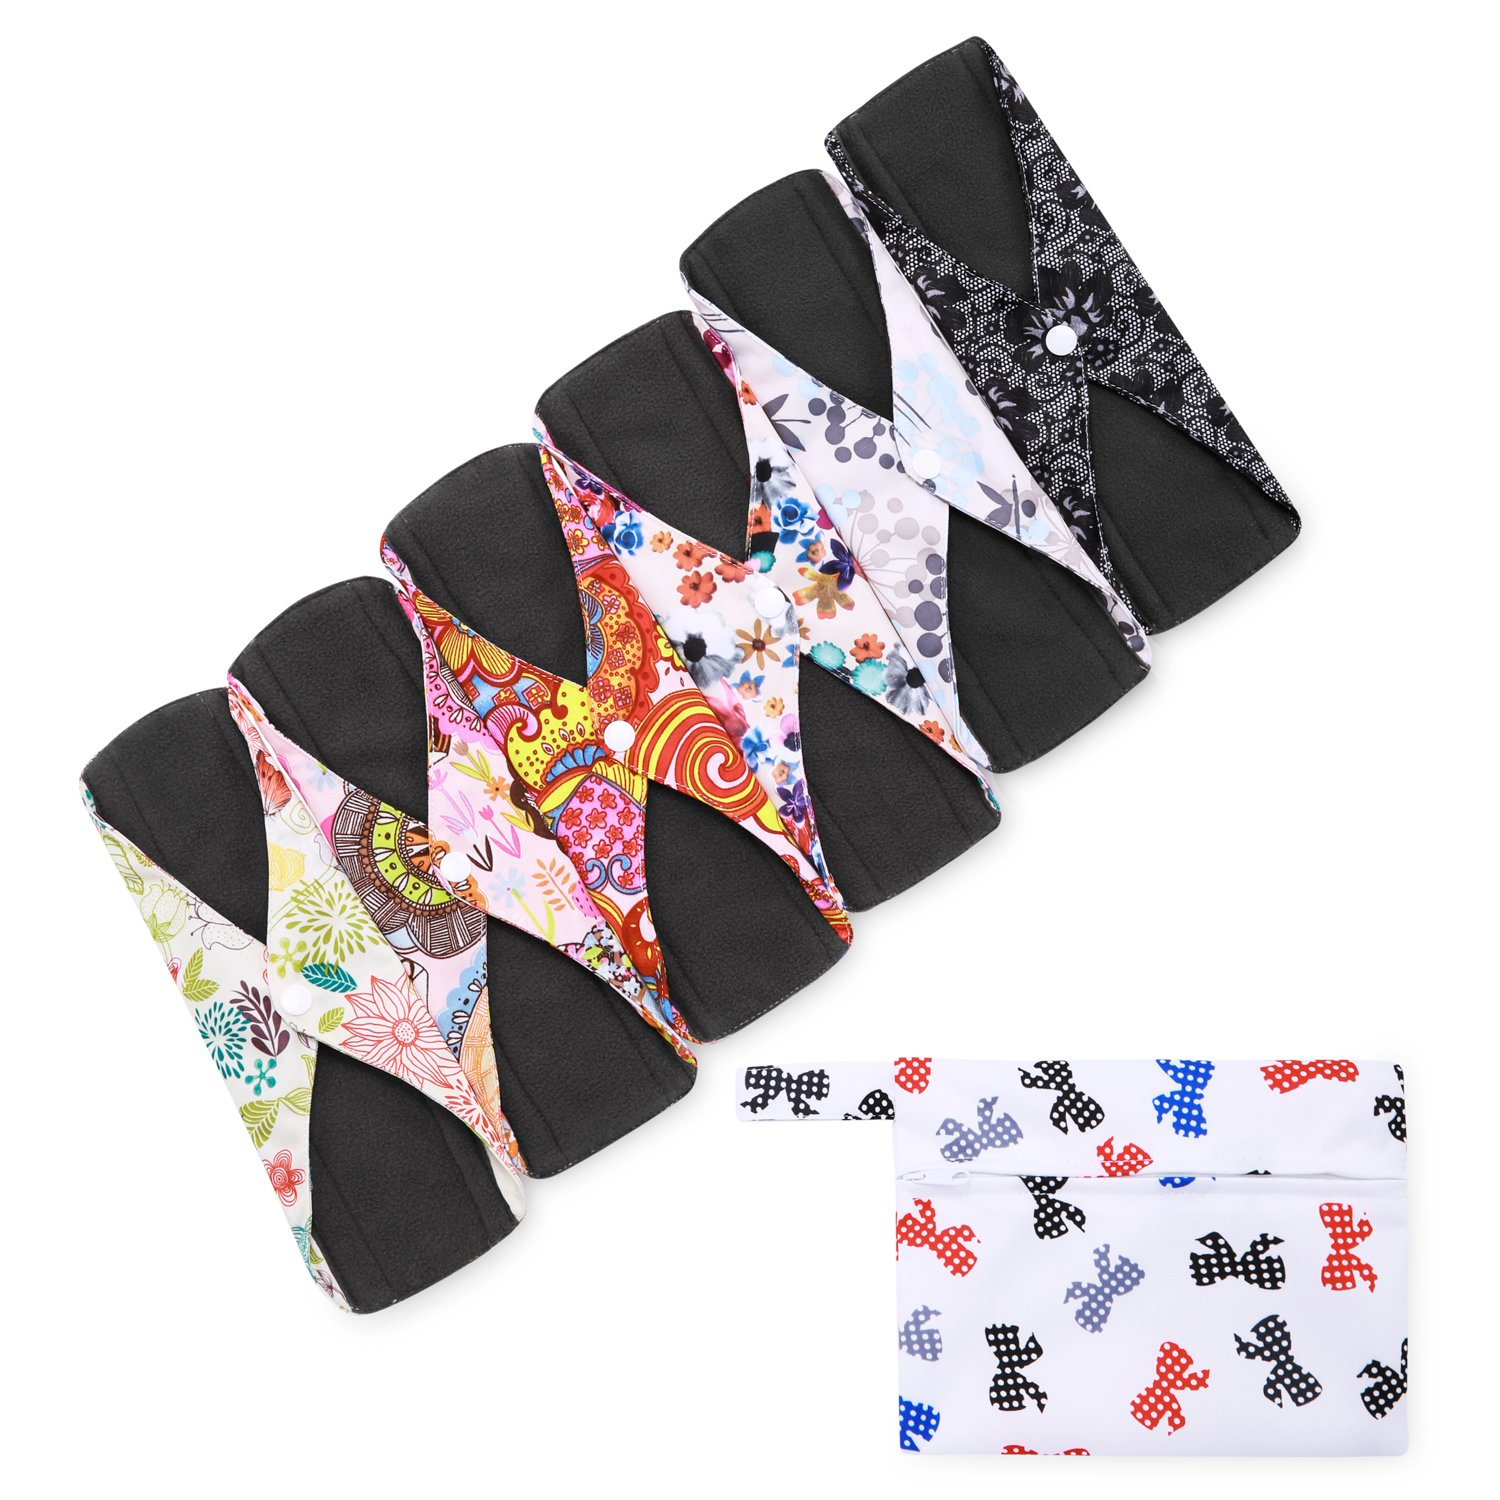 Ranferry Reusable Menstrual Pads ( Pack of 6,Large ) with Bamboo Charcoal Layer,Tampon and Ladies Panties for Antibacterial Protection, Sanitary Napkins for Feminine Period Care